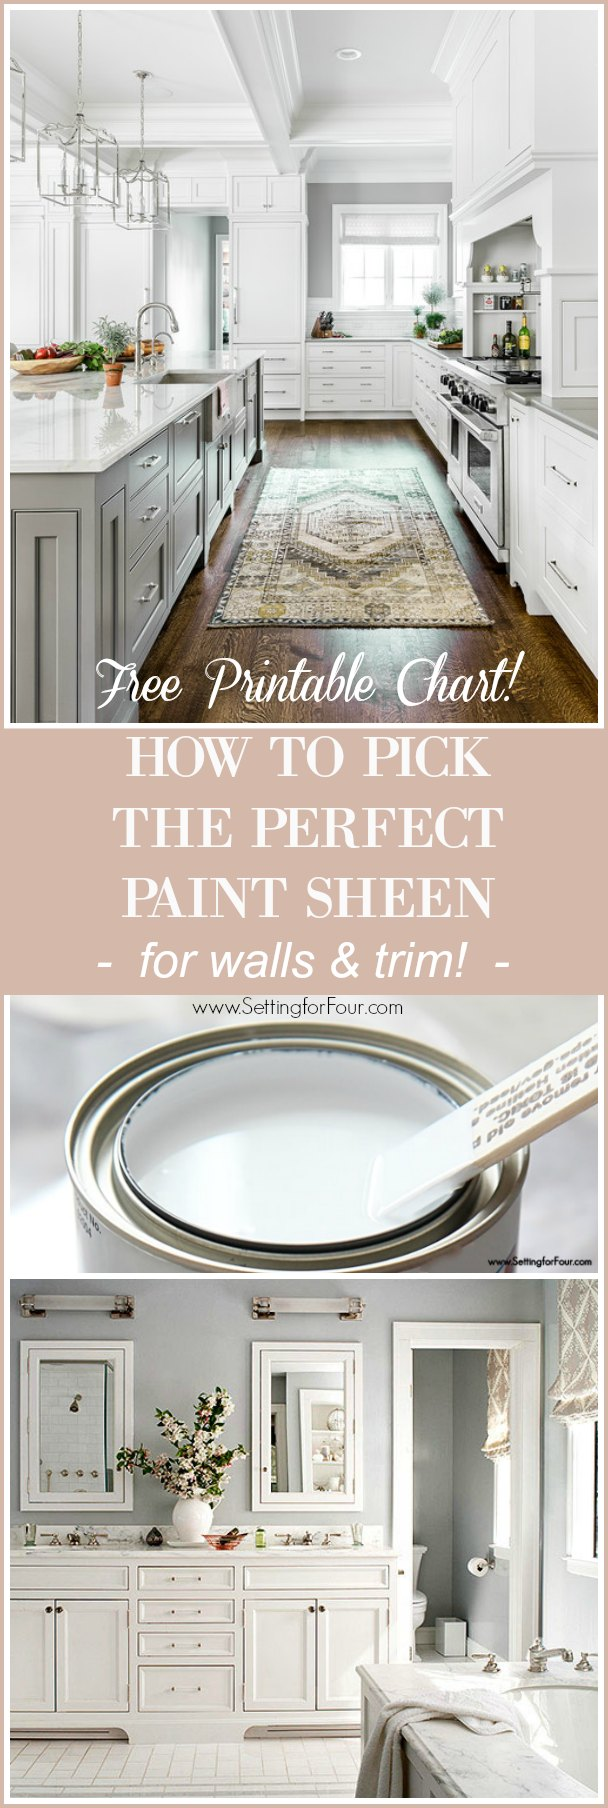 Helpful DIY Home Decor and Paint Tips - How To Pick The Perfect Paint Sheen for Walls, Cabinets and Trim. Free Printable Chart!